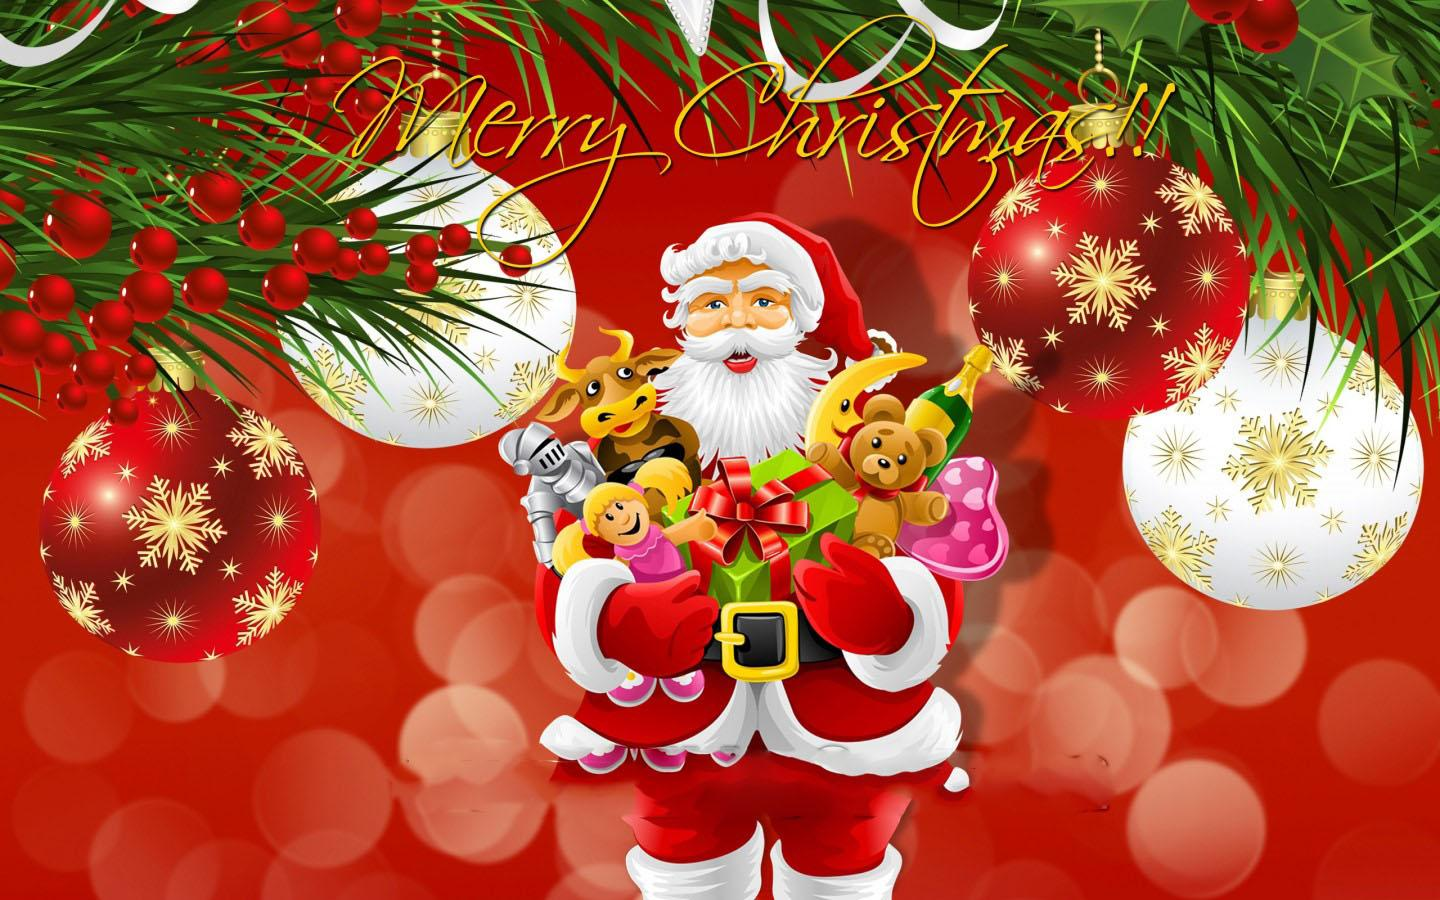 Merry Christmas wallpaper   Android Apps on Google Play 1440x900